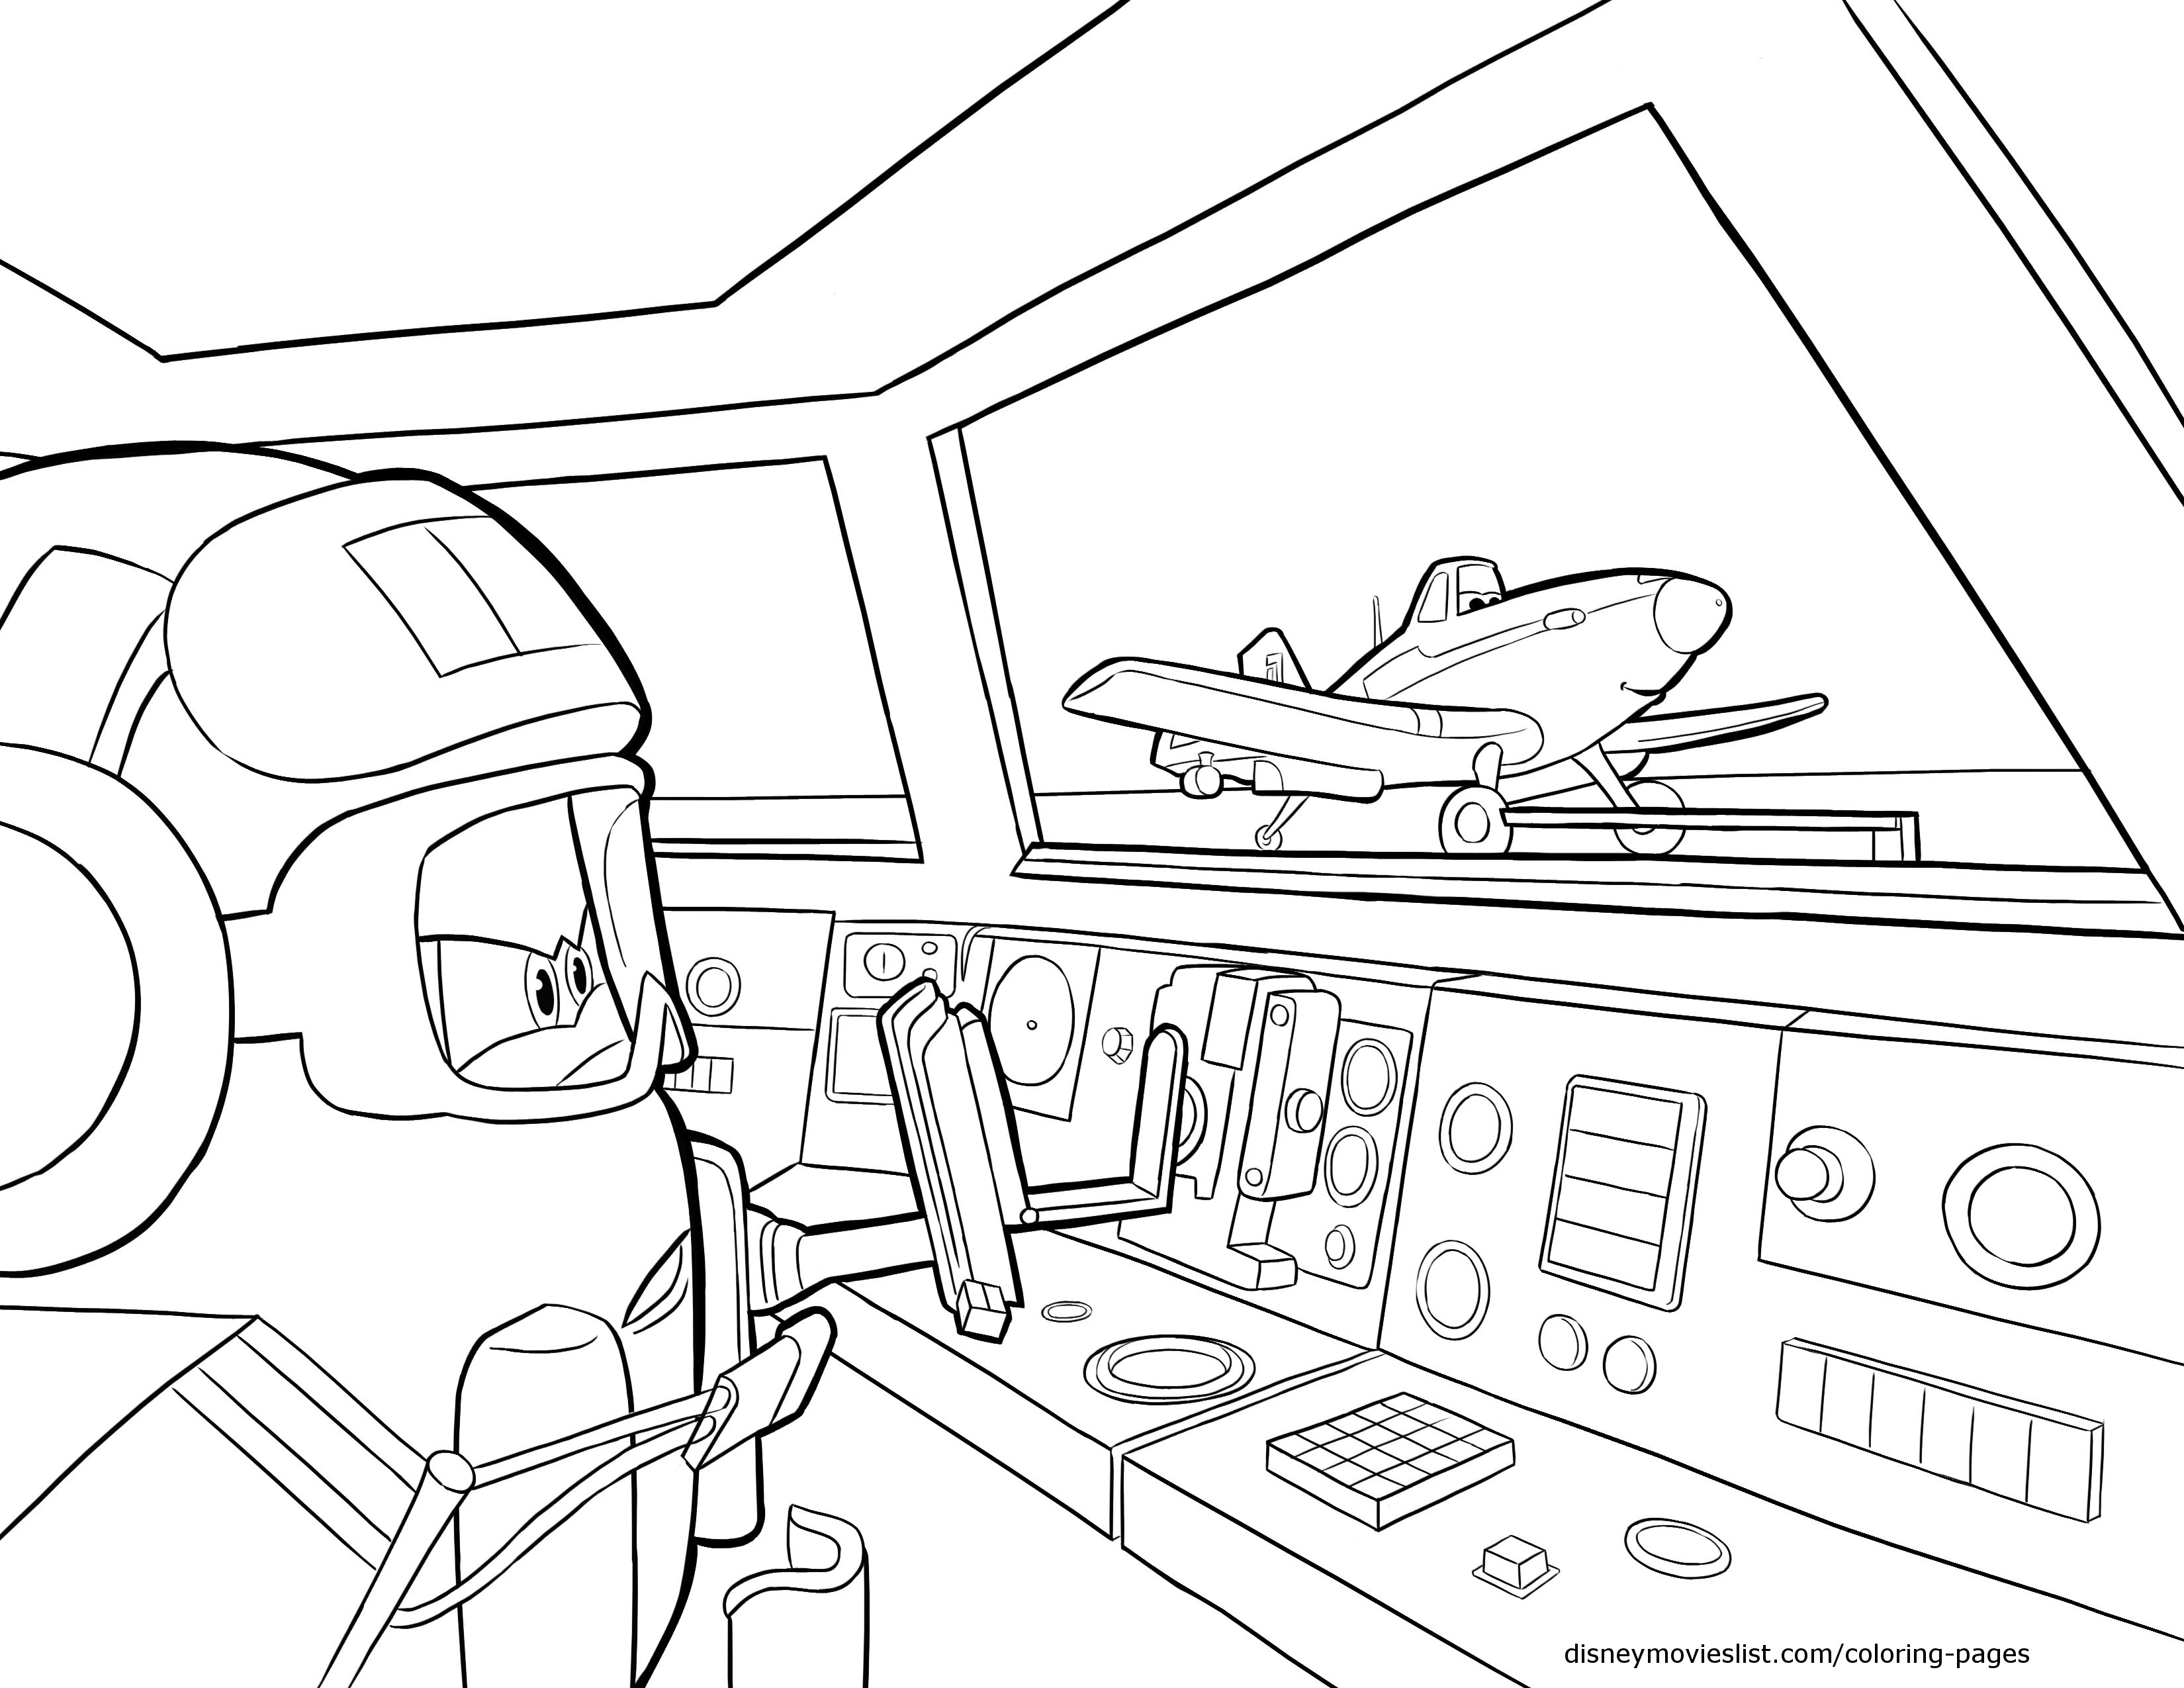 Dusty Planes Coloring Pages at GetDrawings.com | Free for personal ...